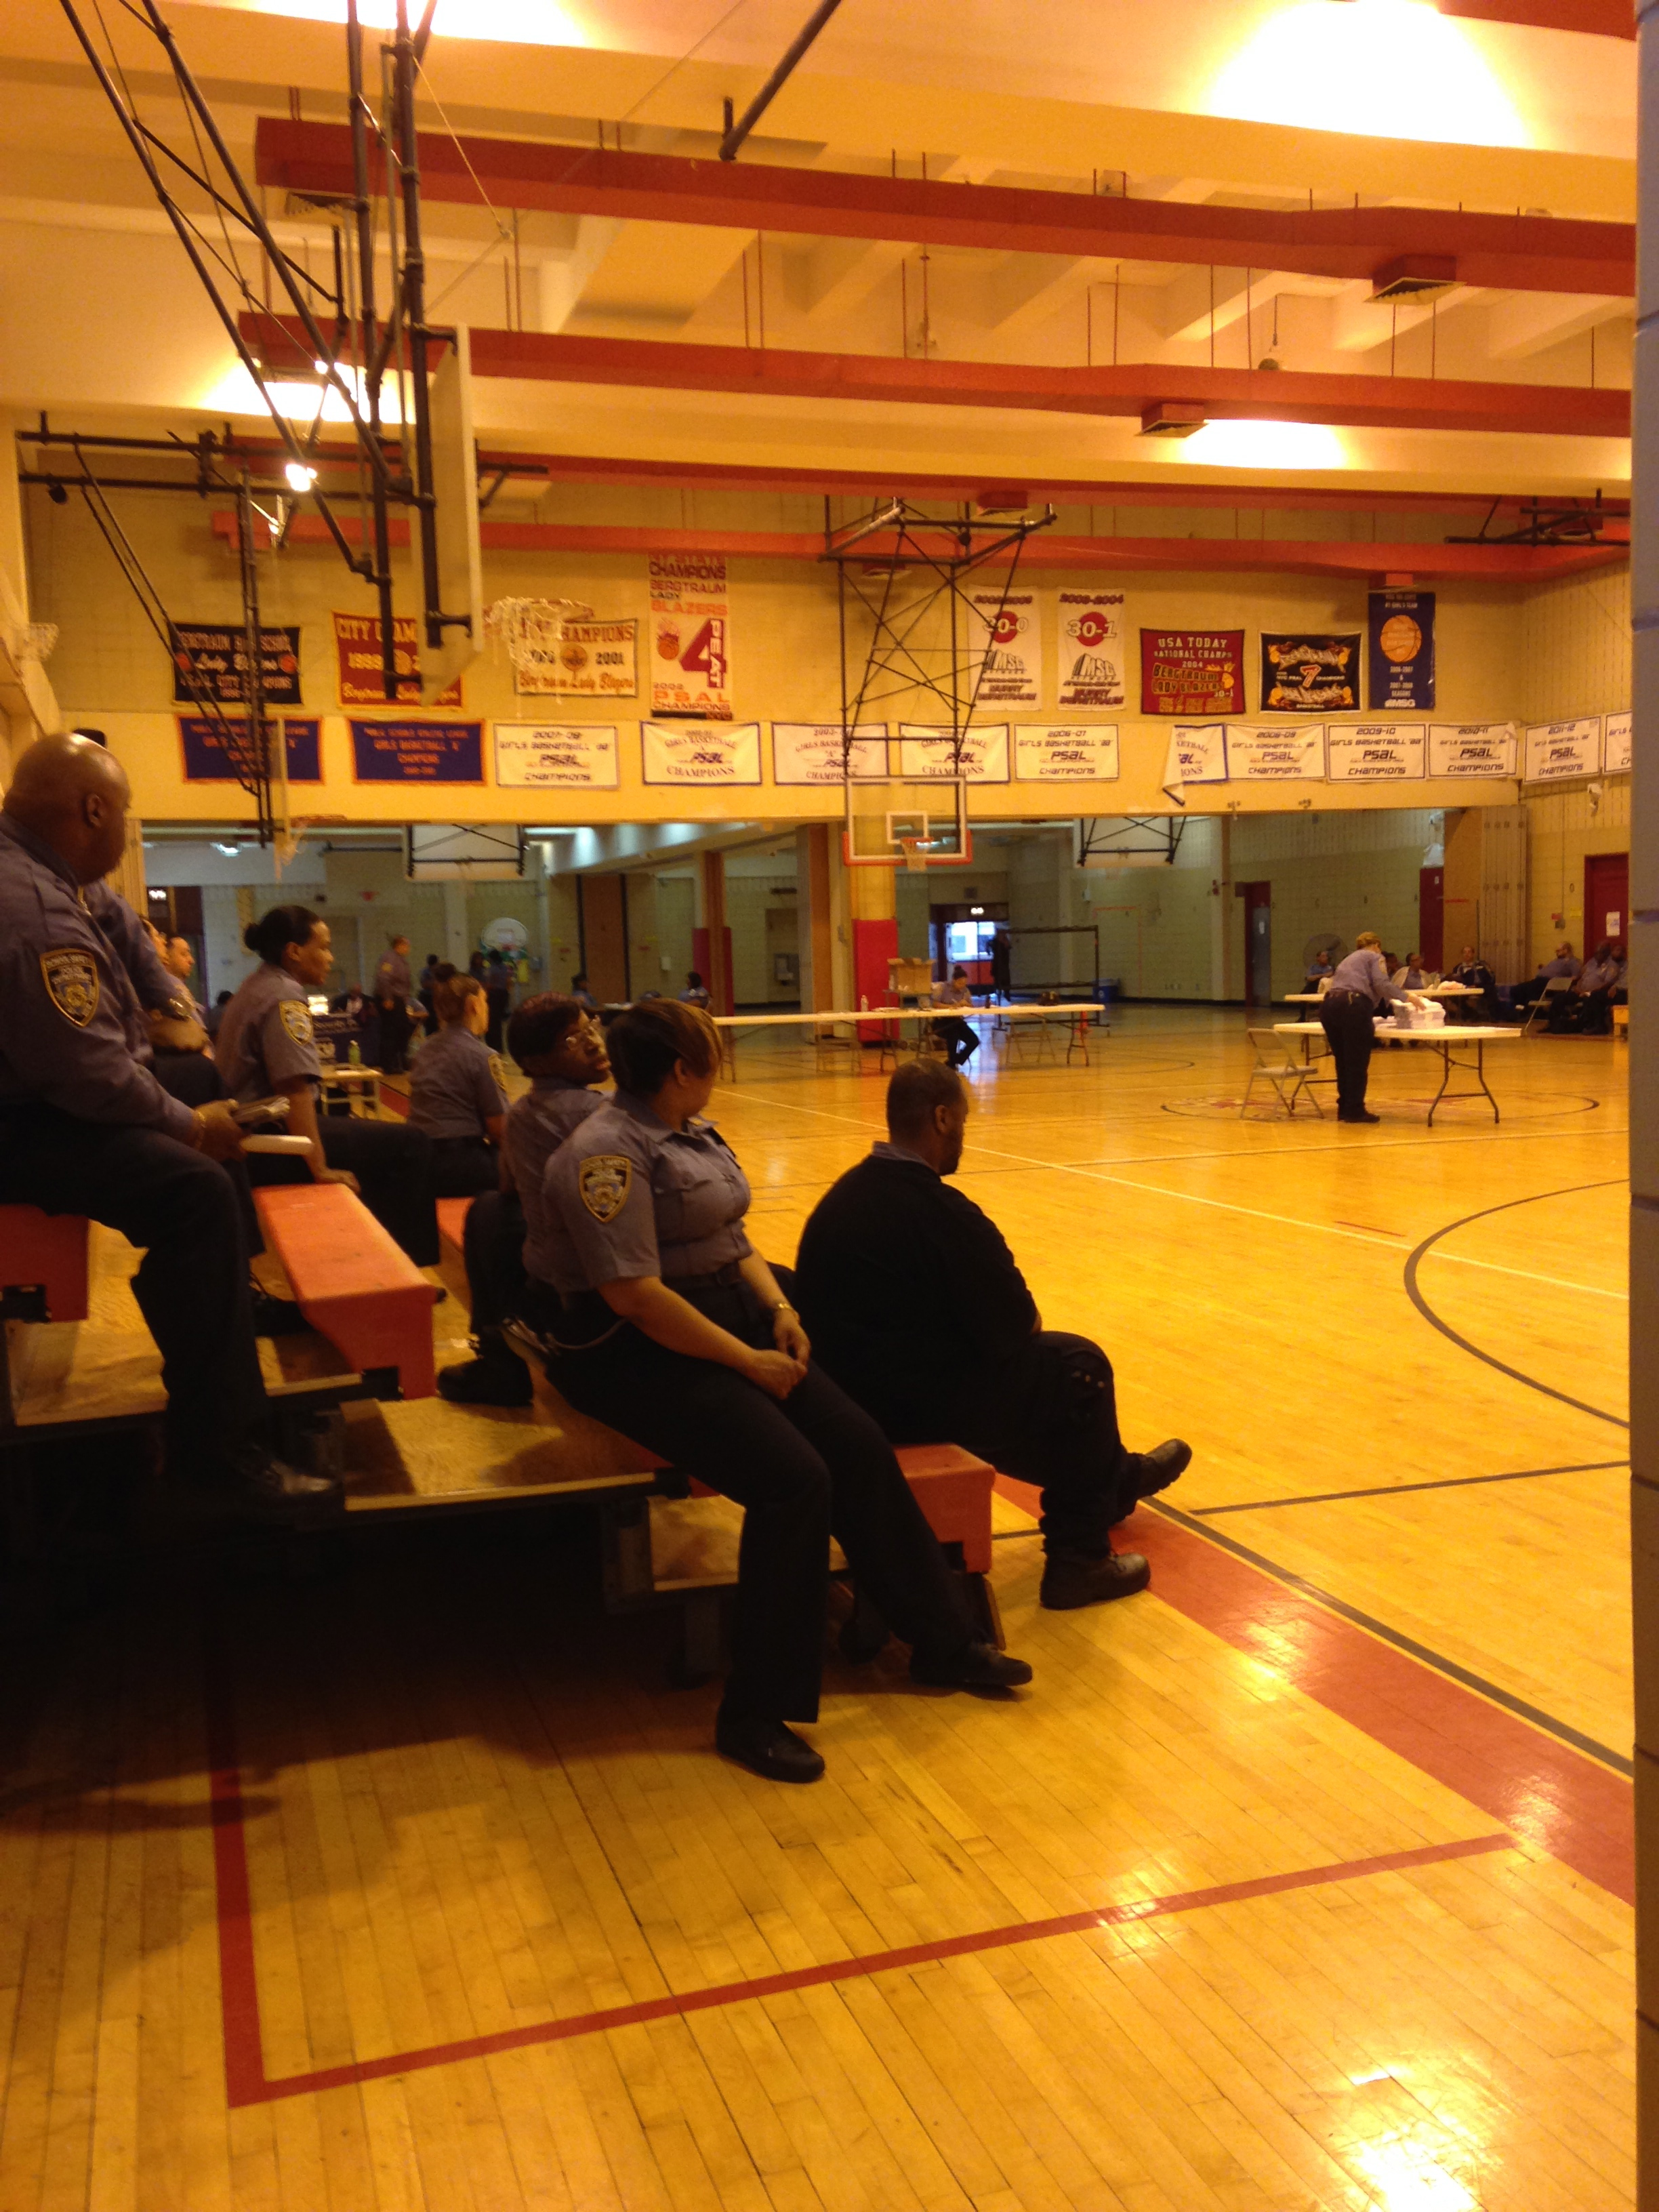 One of the two gymnasiums